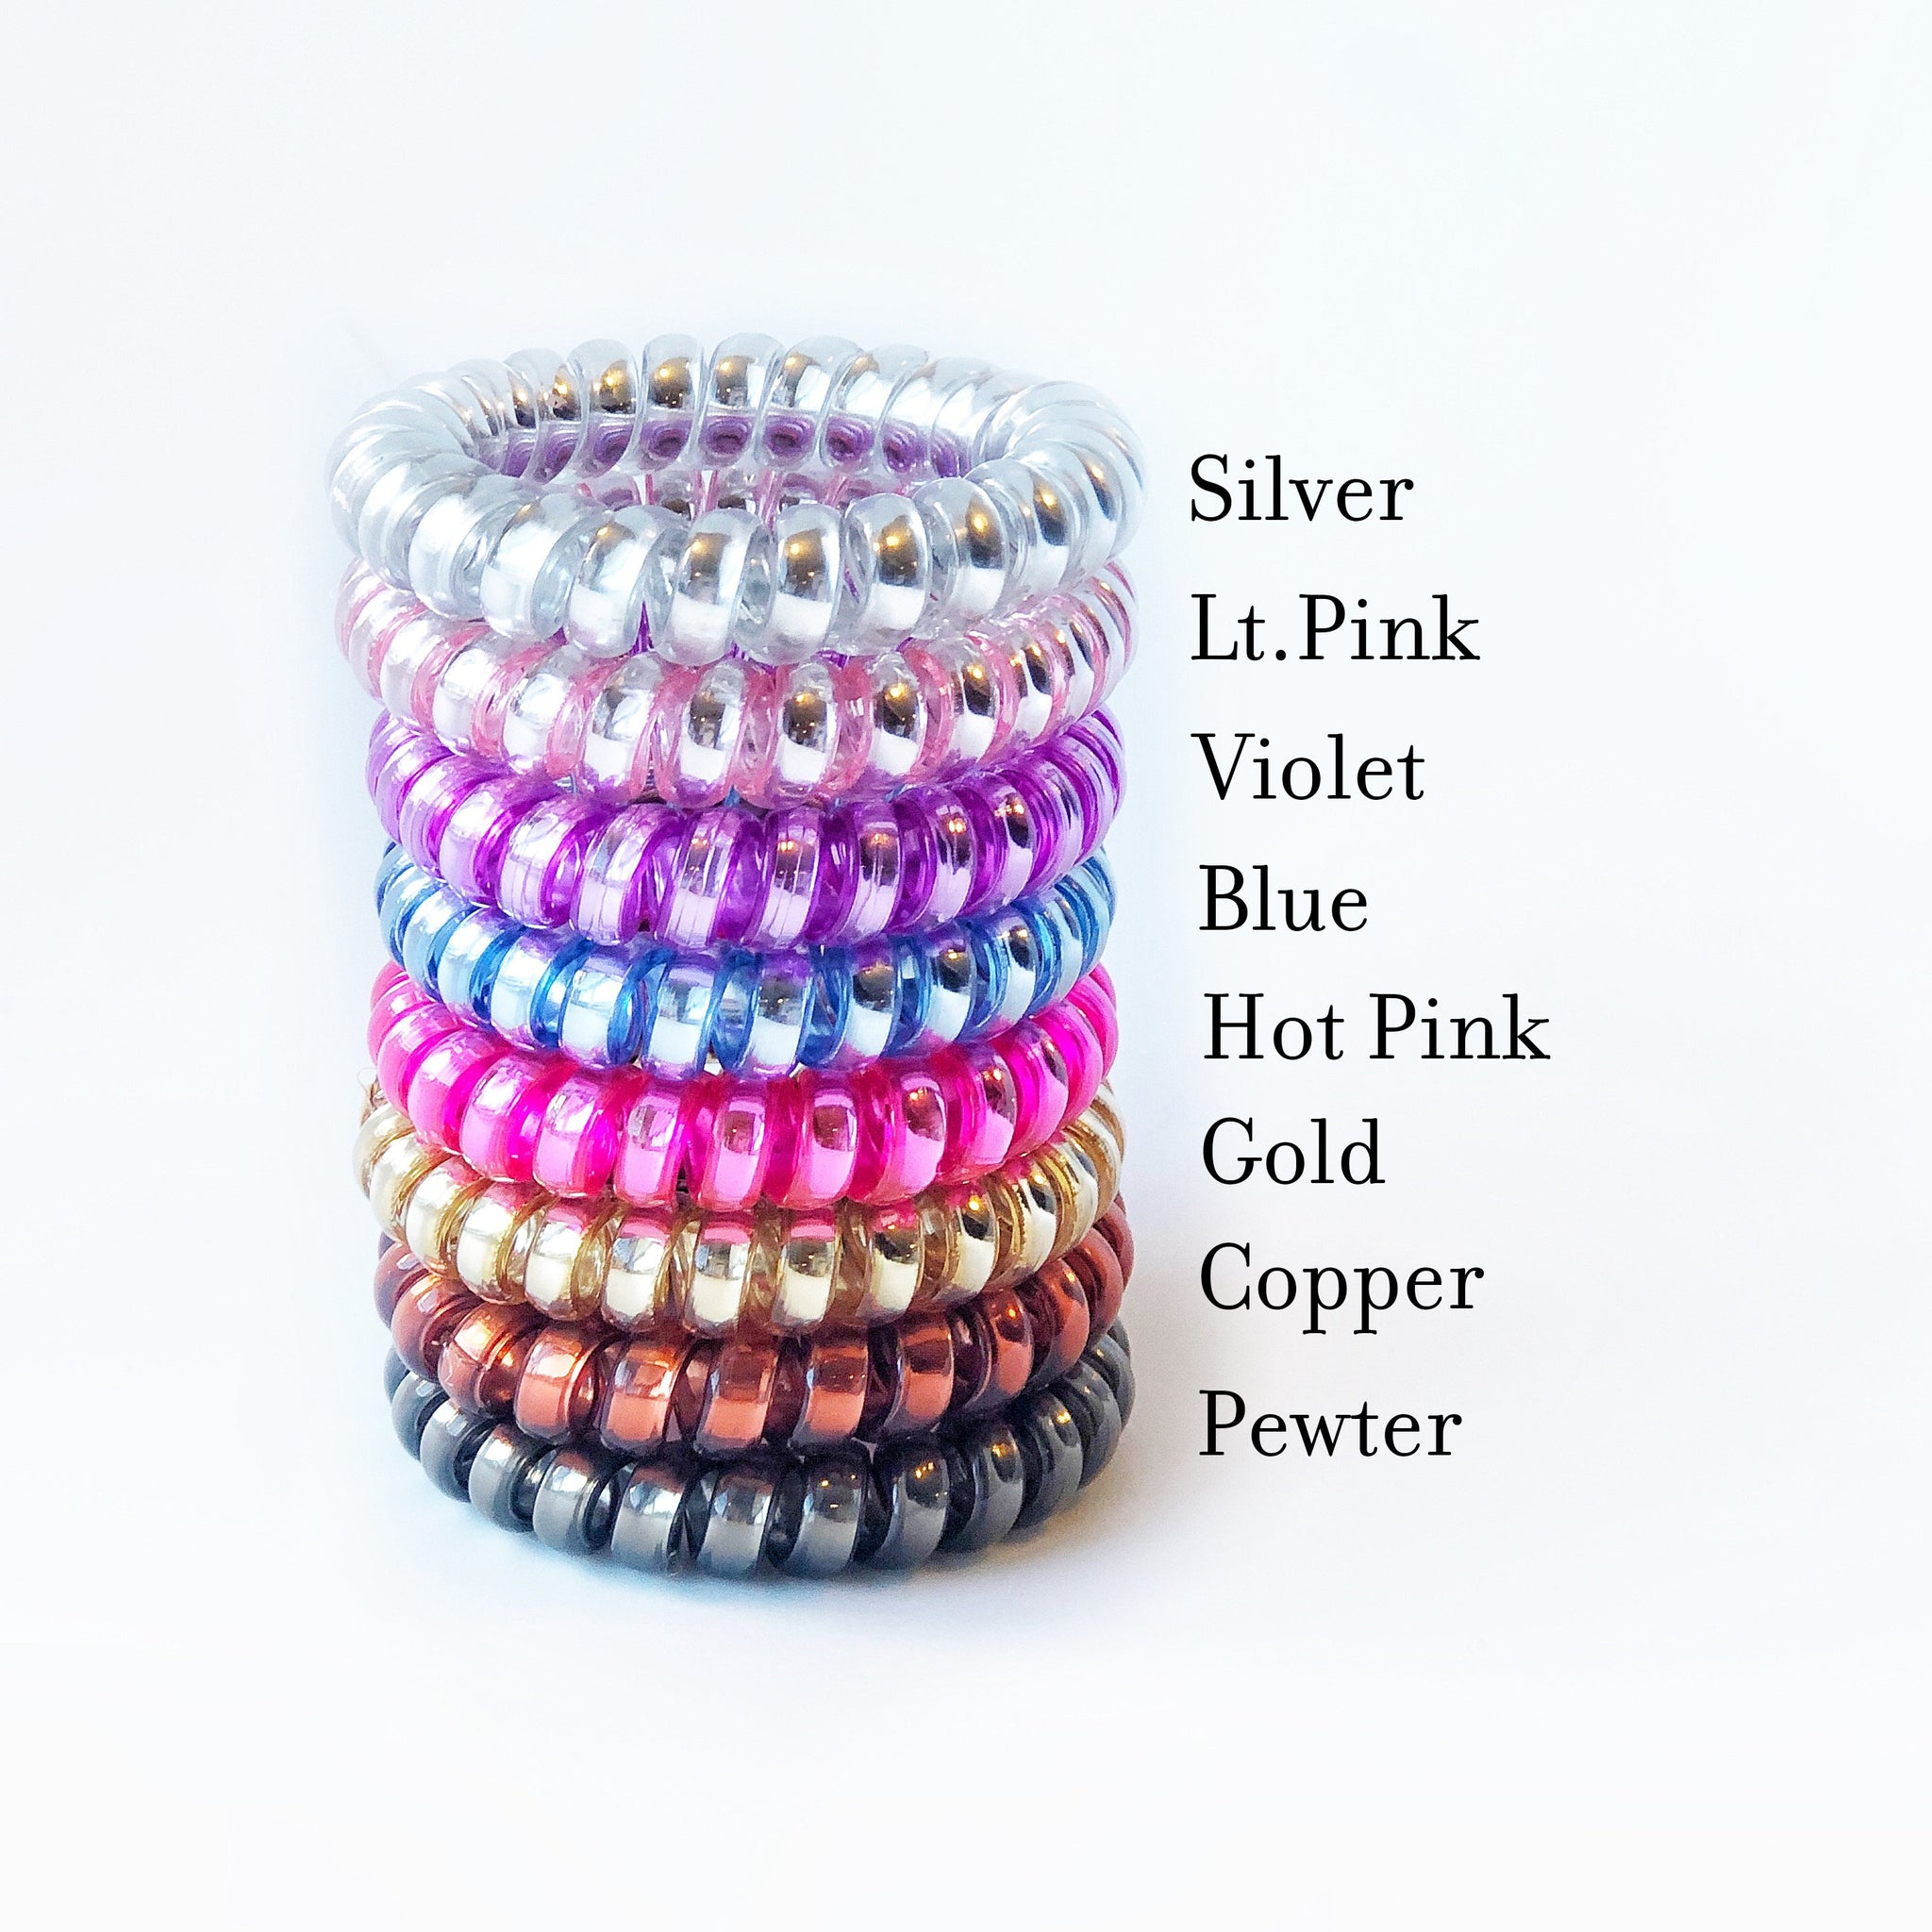 Beach Bachelorette Party Favors, Spiral Hair Ties, She Said Yes We Said Cancun - @PlumPolkaDot